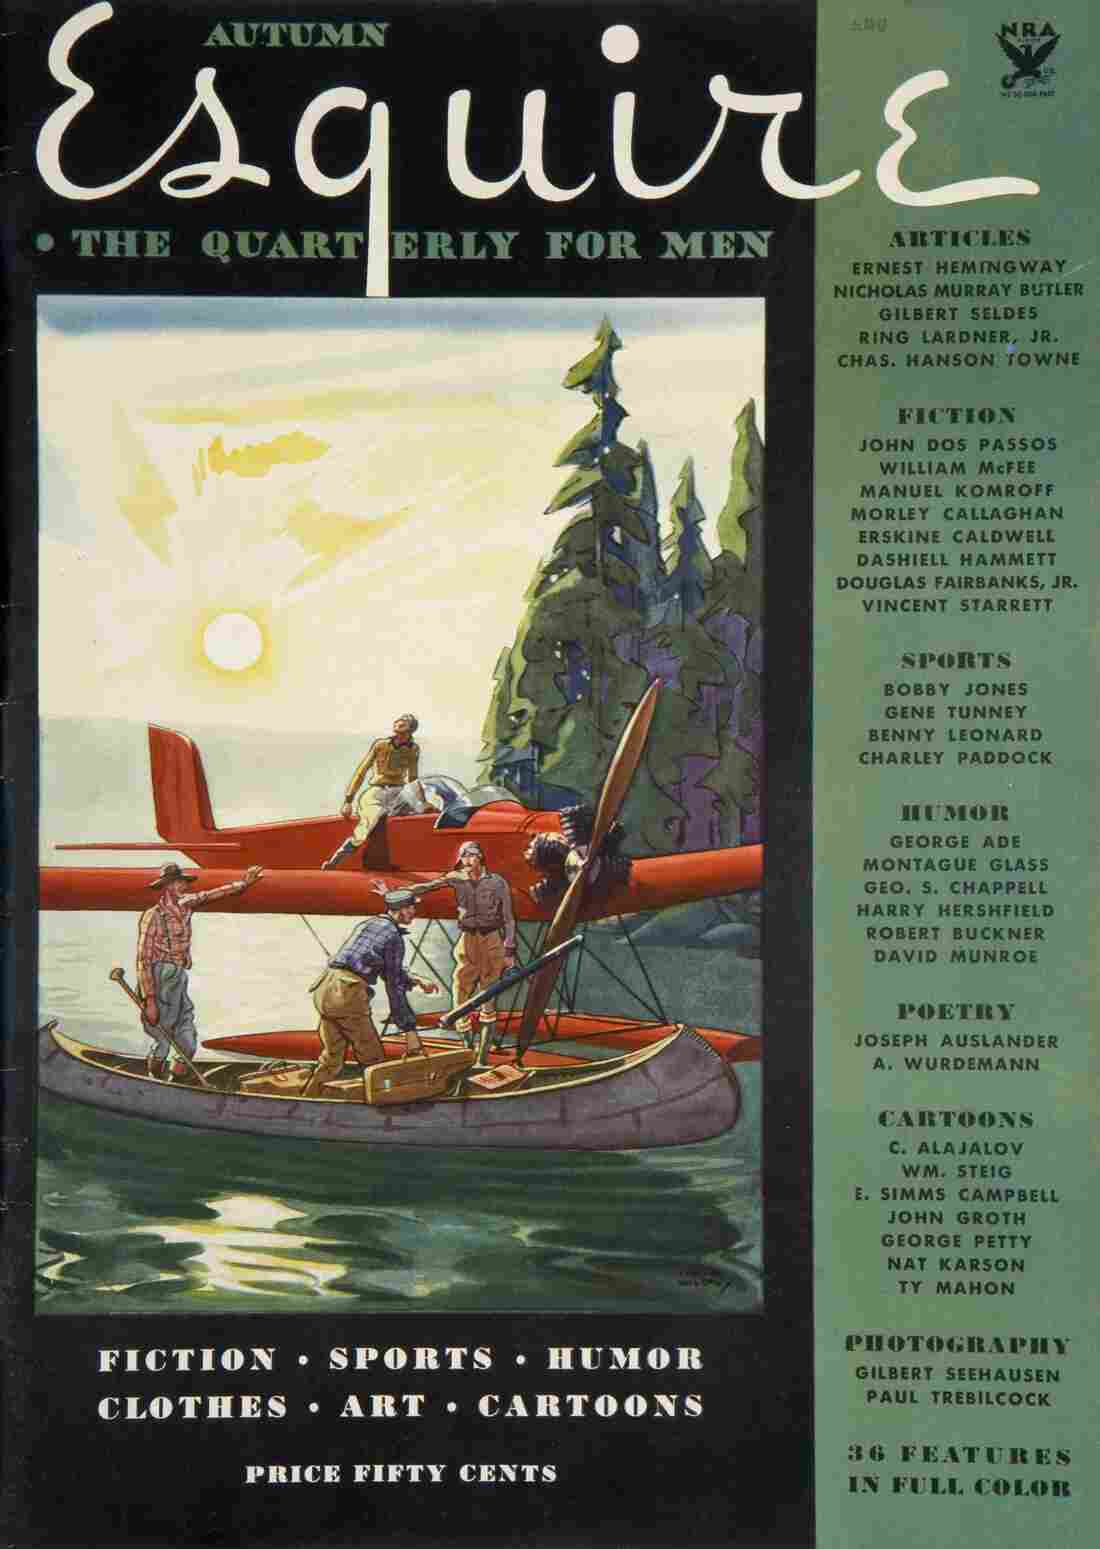 The cover to the very first issue of Esquire, published shortly after the magazine's founding by Arnold Gingrich.